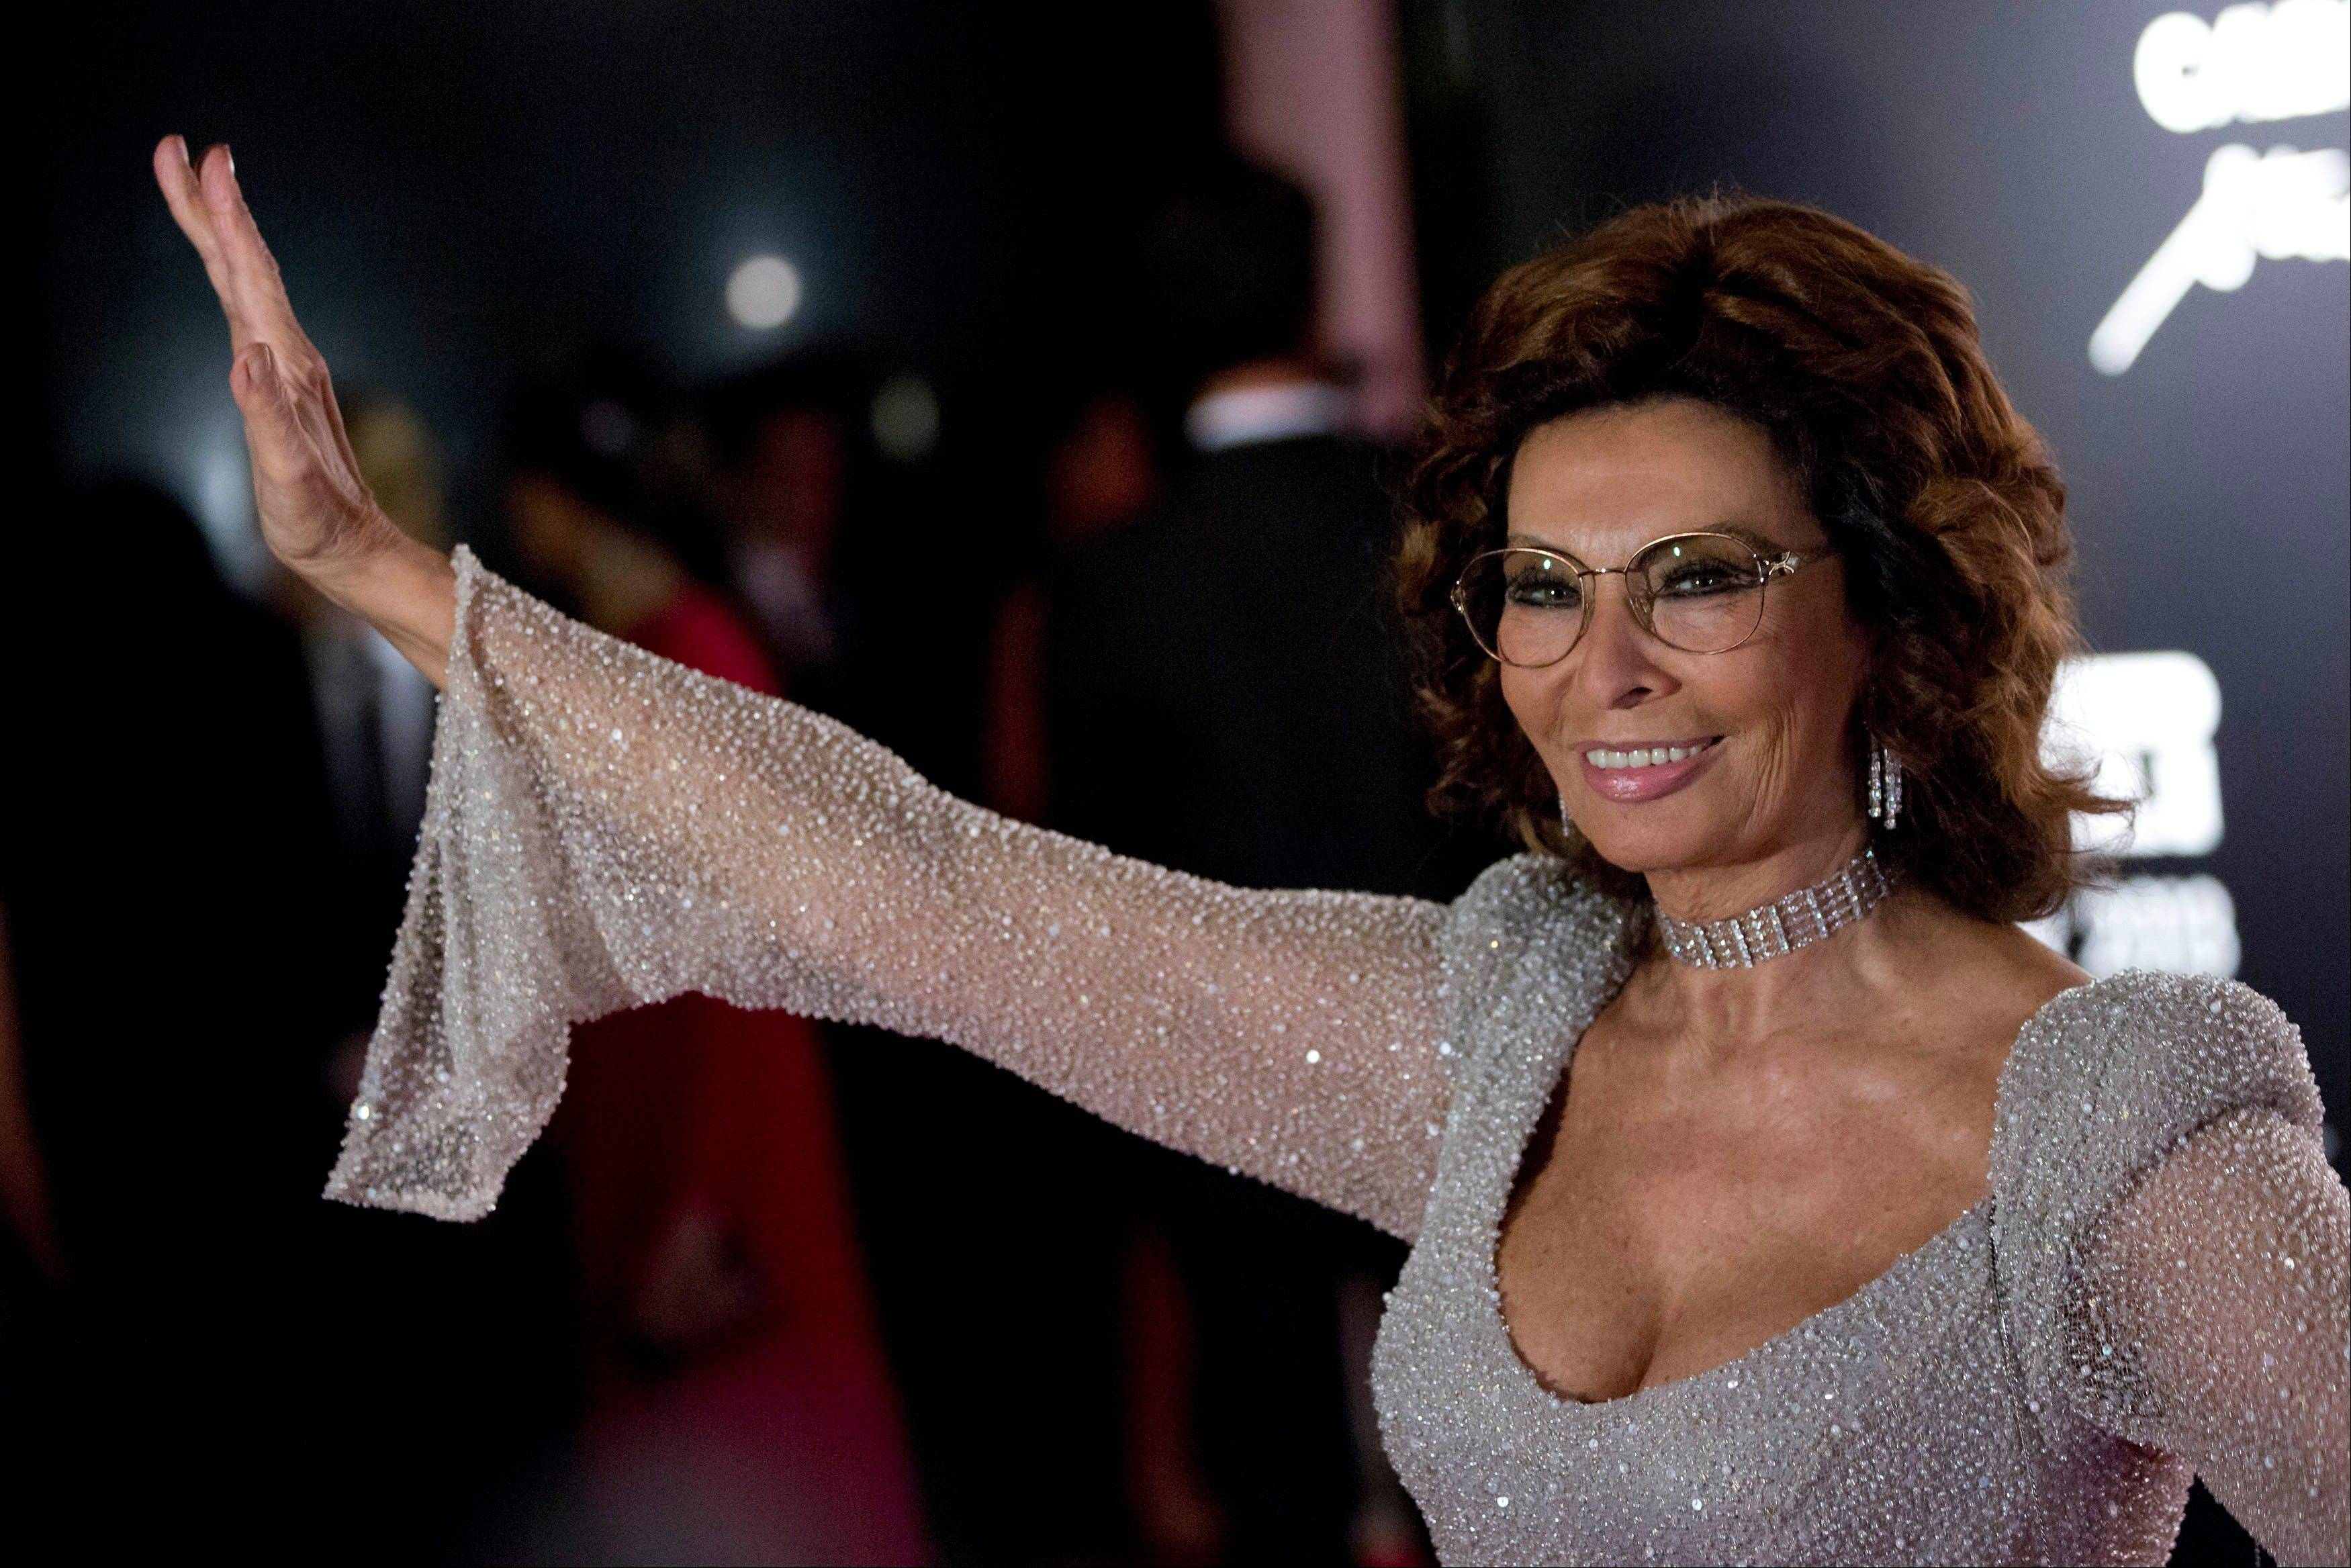 Italian actress Sophia Loren poses for photos at the 2013 Pirelli Calendar red carpet event in Rio de Janeiro, Brazil.